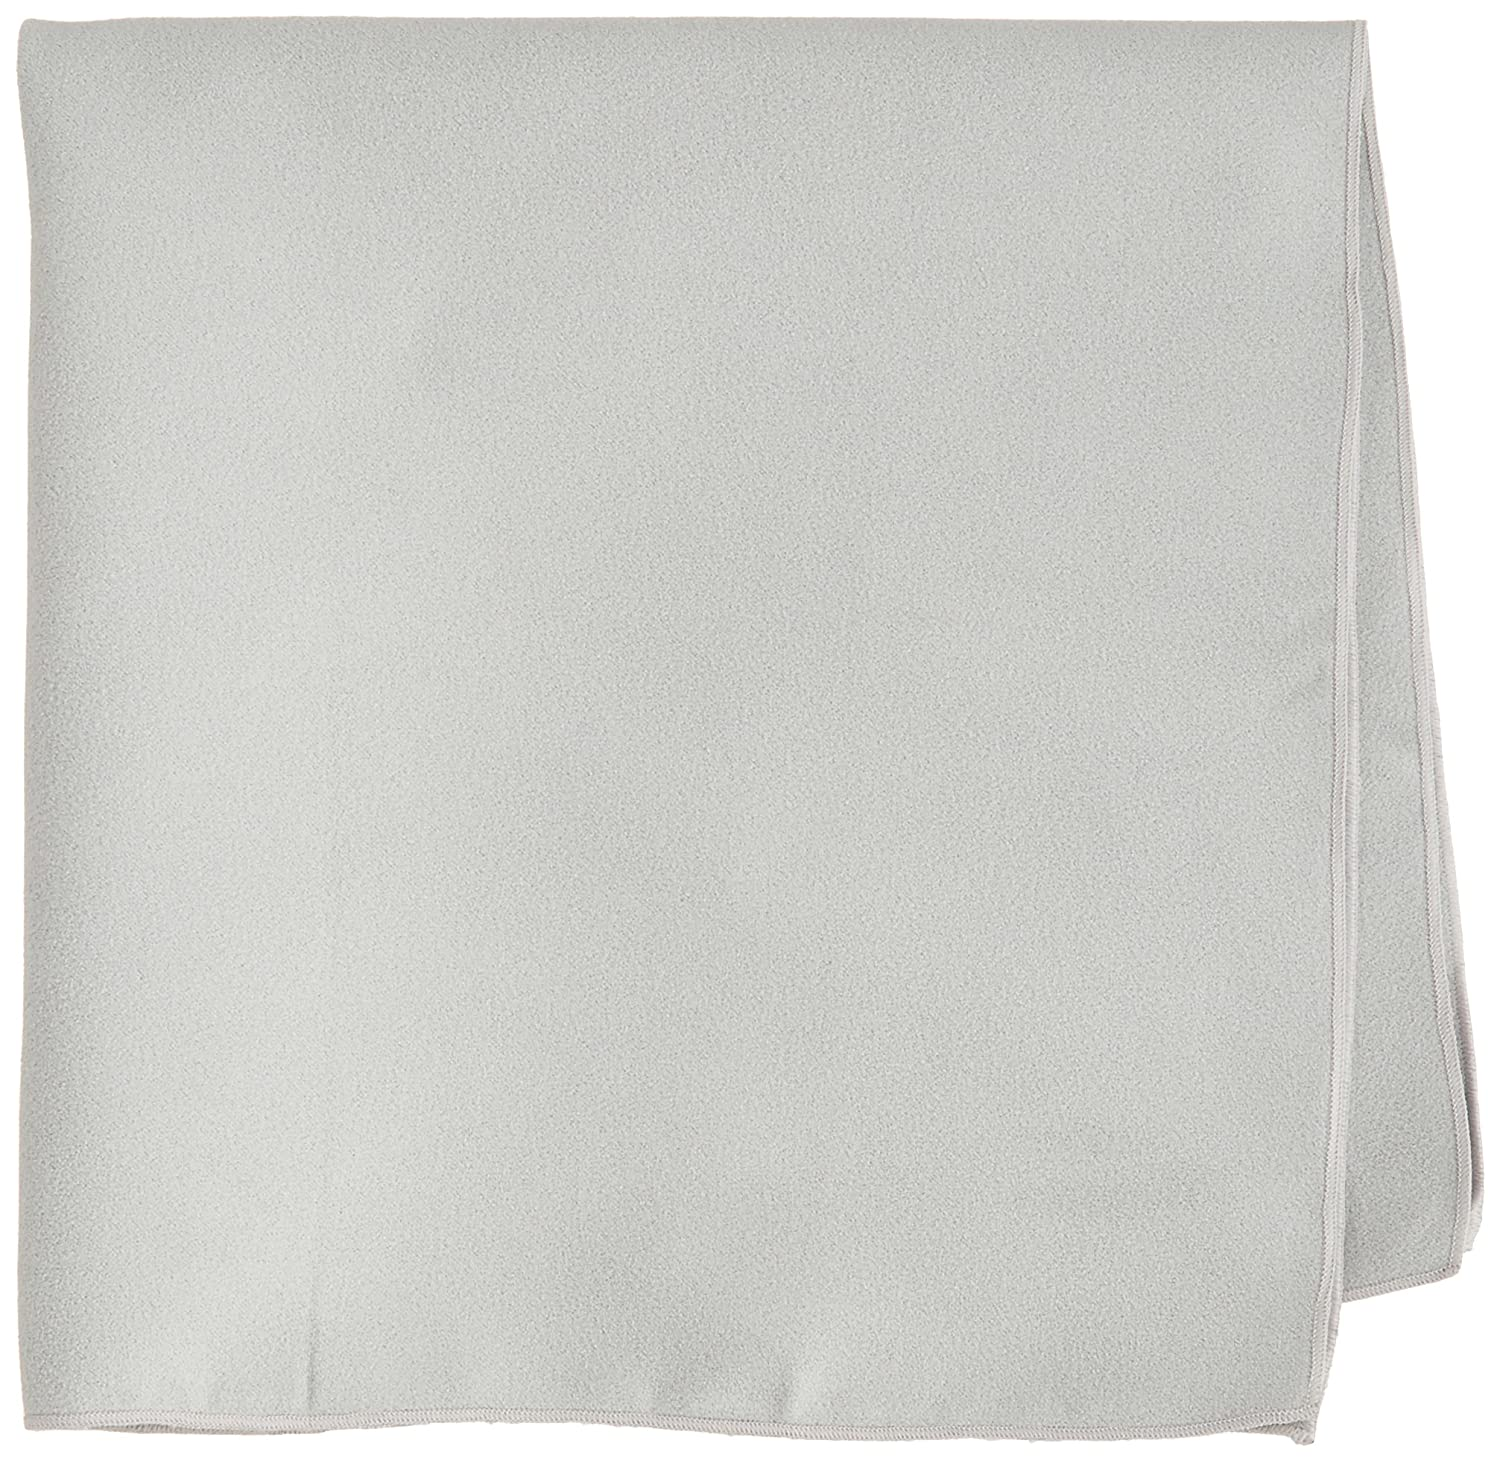 BG A62L Large Microfiber Care Cloth for All Instruments